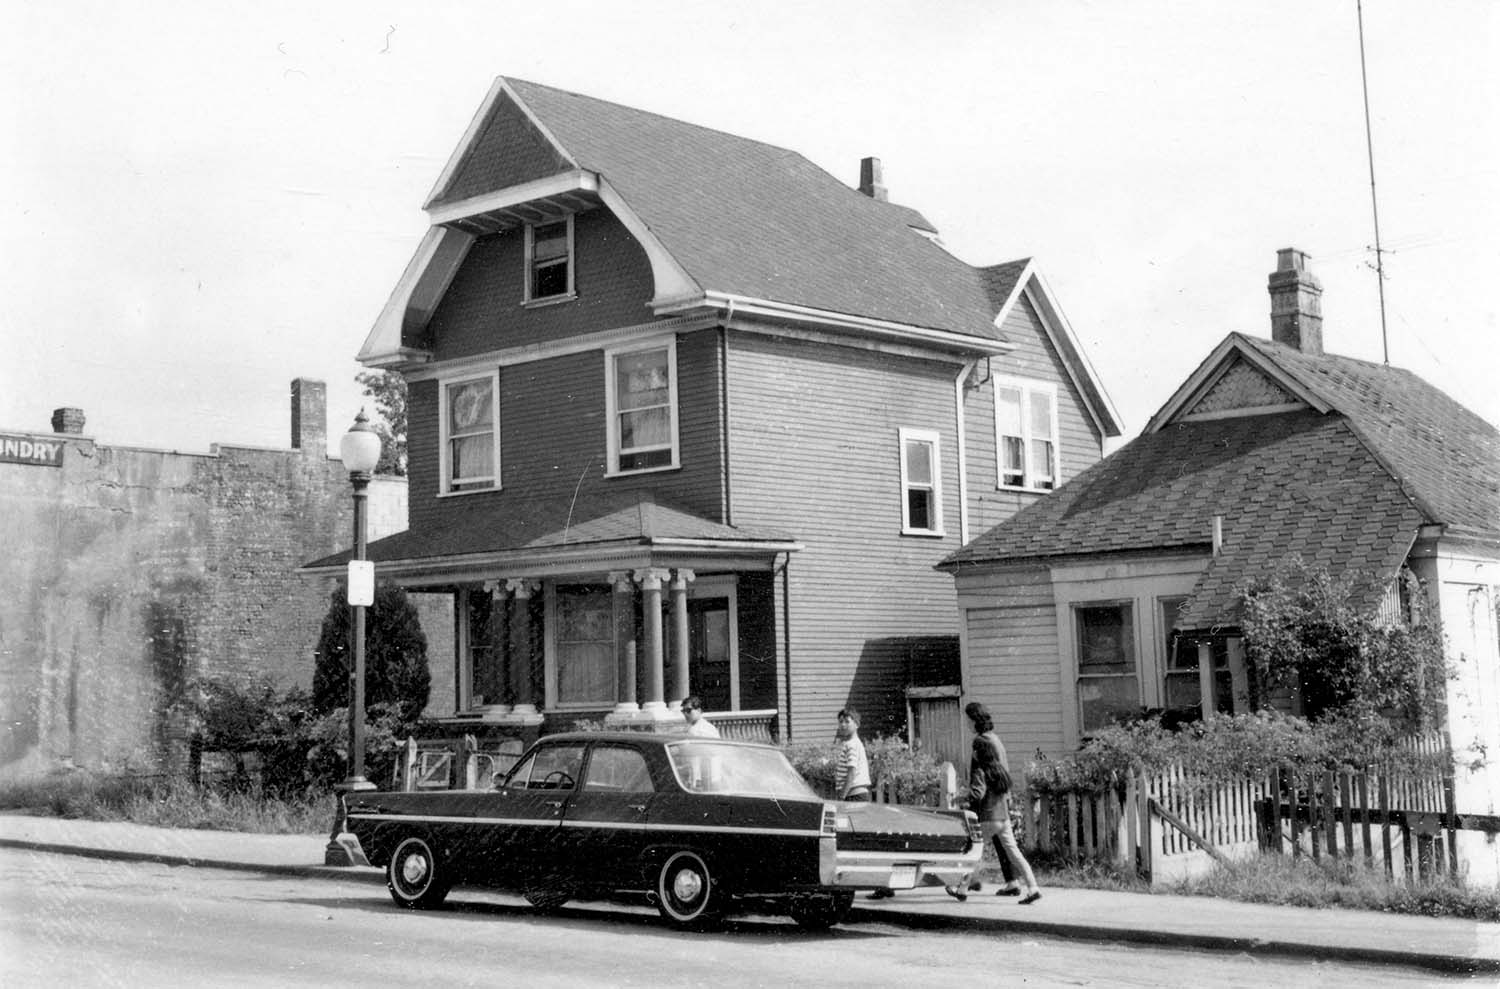 268 Union Street, front, 1968. Photograph also shows part of 264 Union Street. Reference code COV-S168-: CVA 203-51